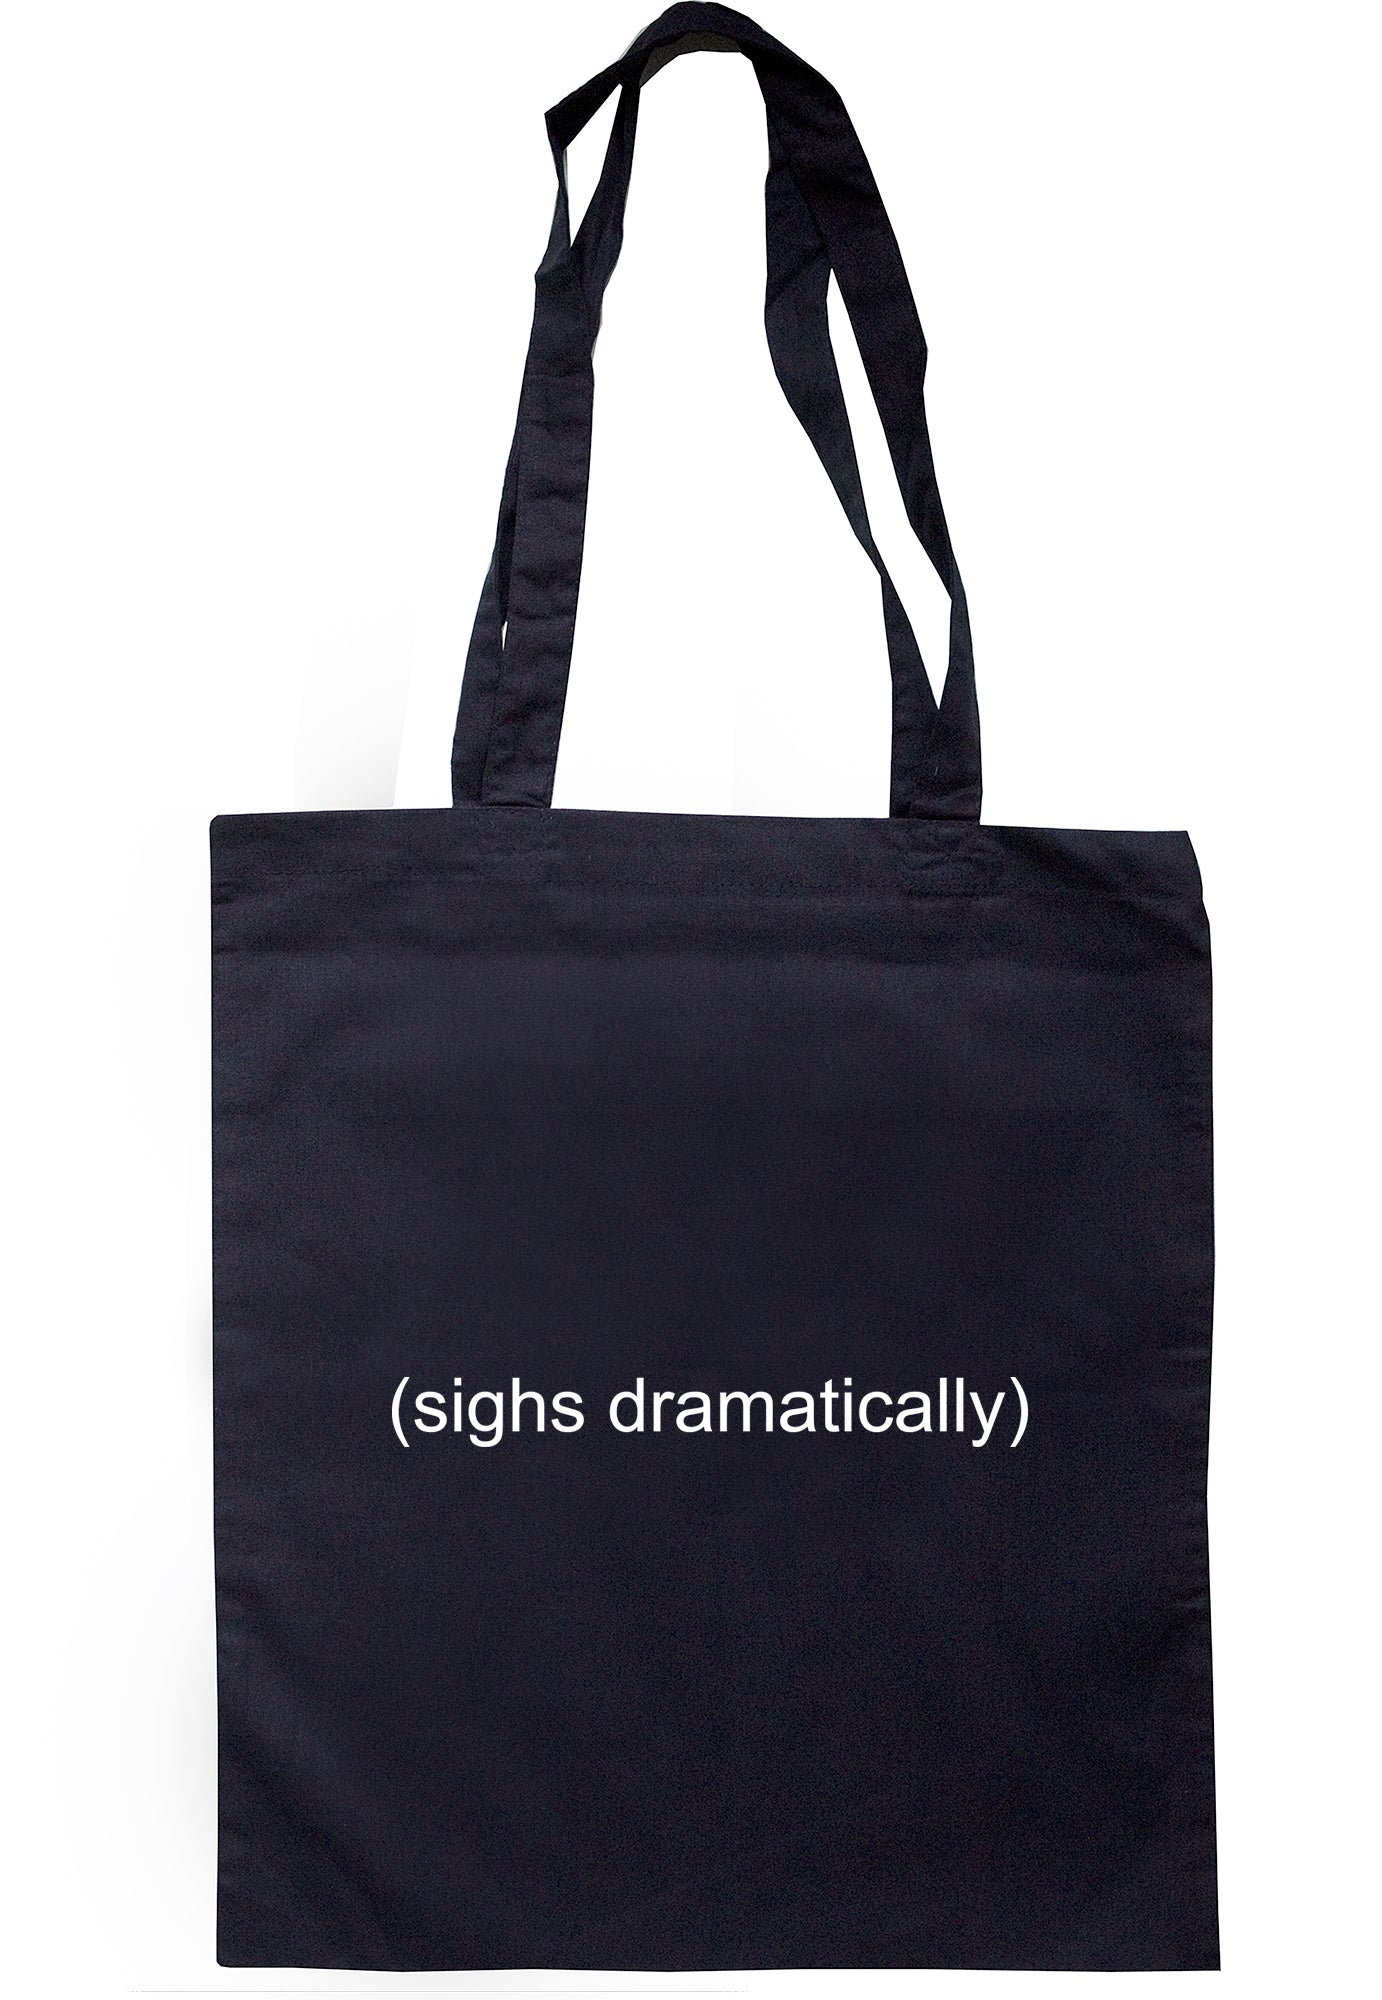 (Sighs Dramatically) Tote Bag S0945 - Illustrated Identity Ltd.